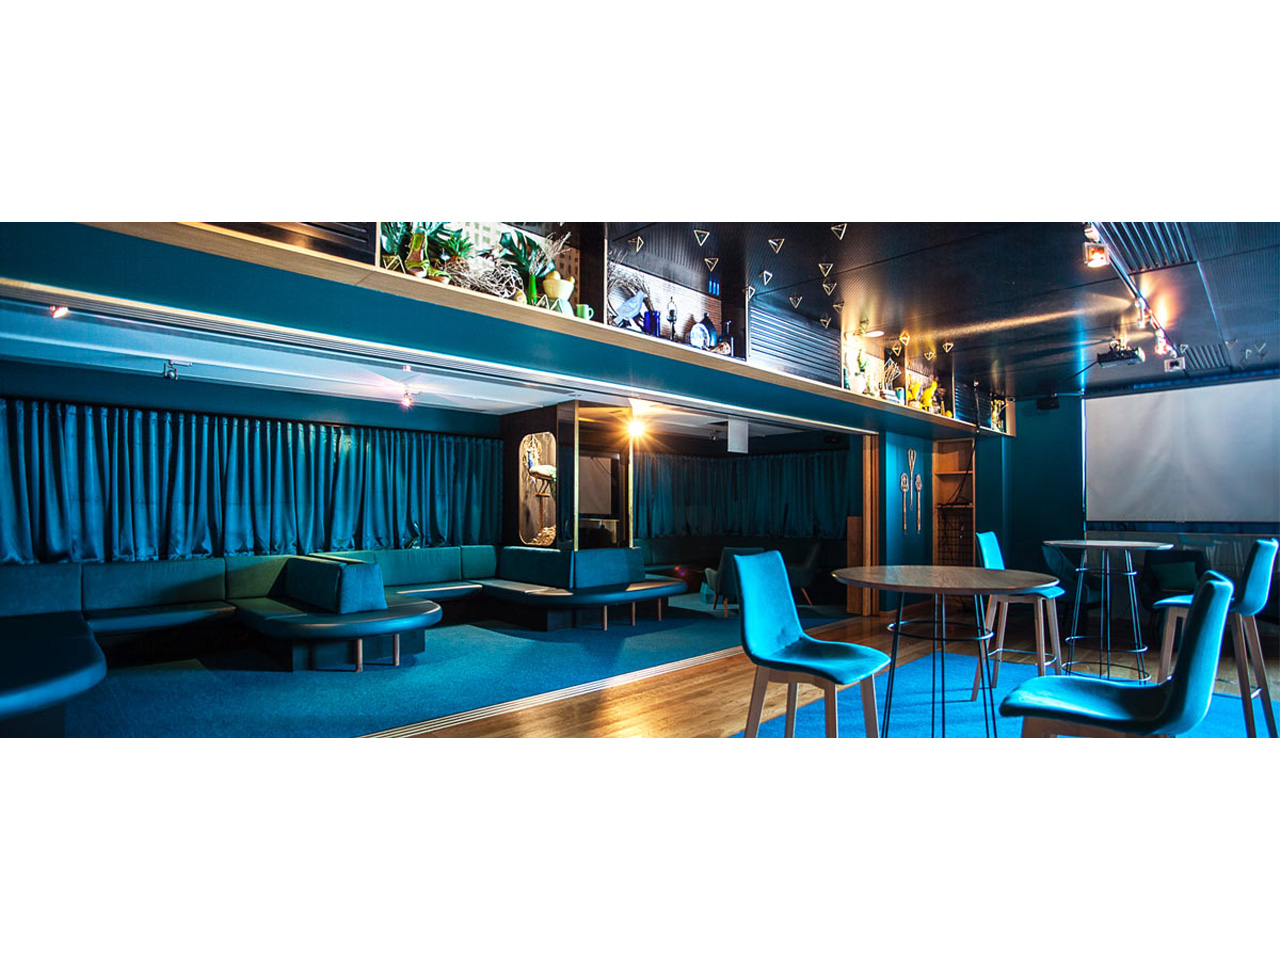 Function room with stylish blue decor with matching blue chairs and tables